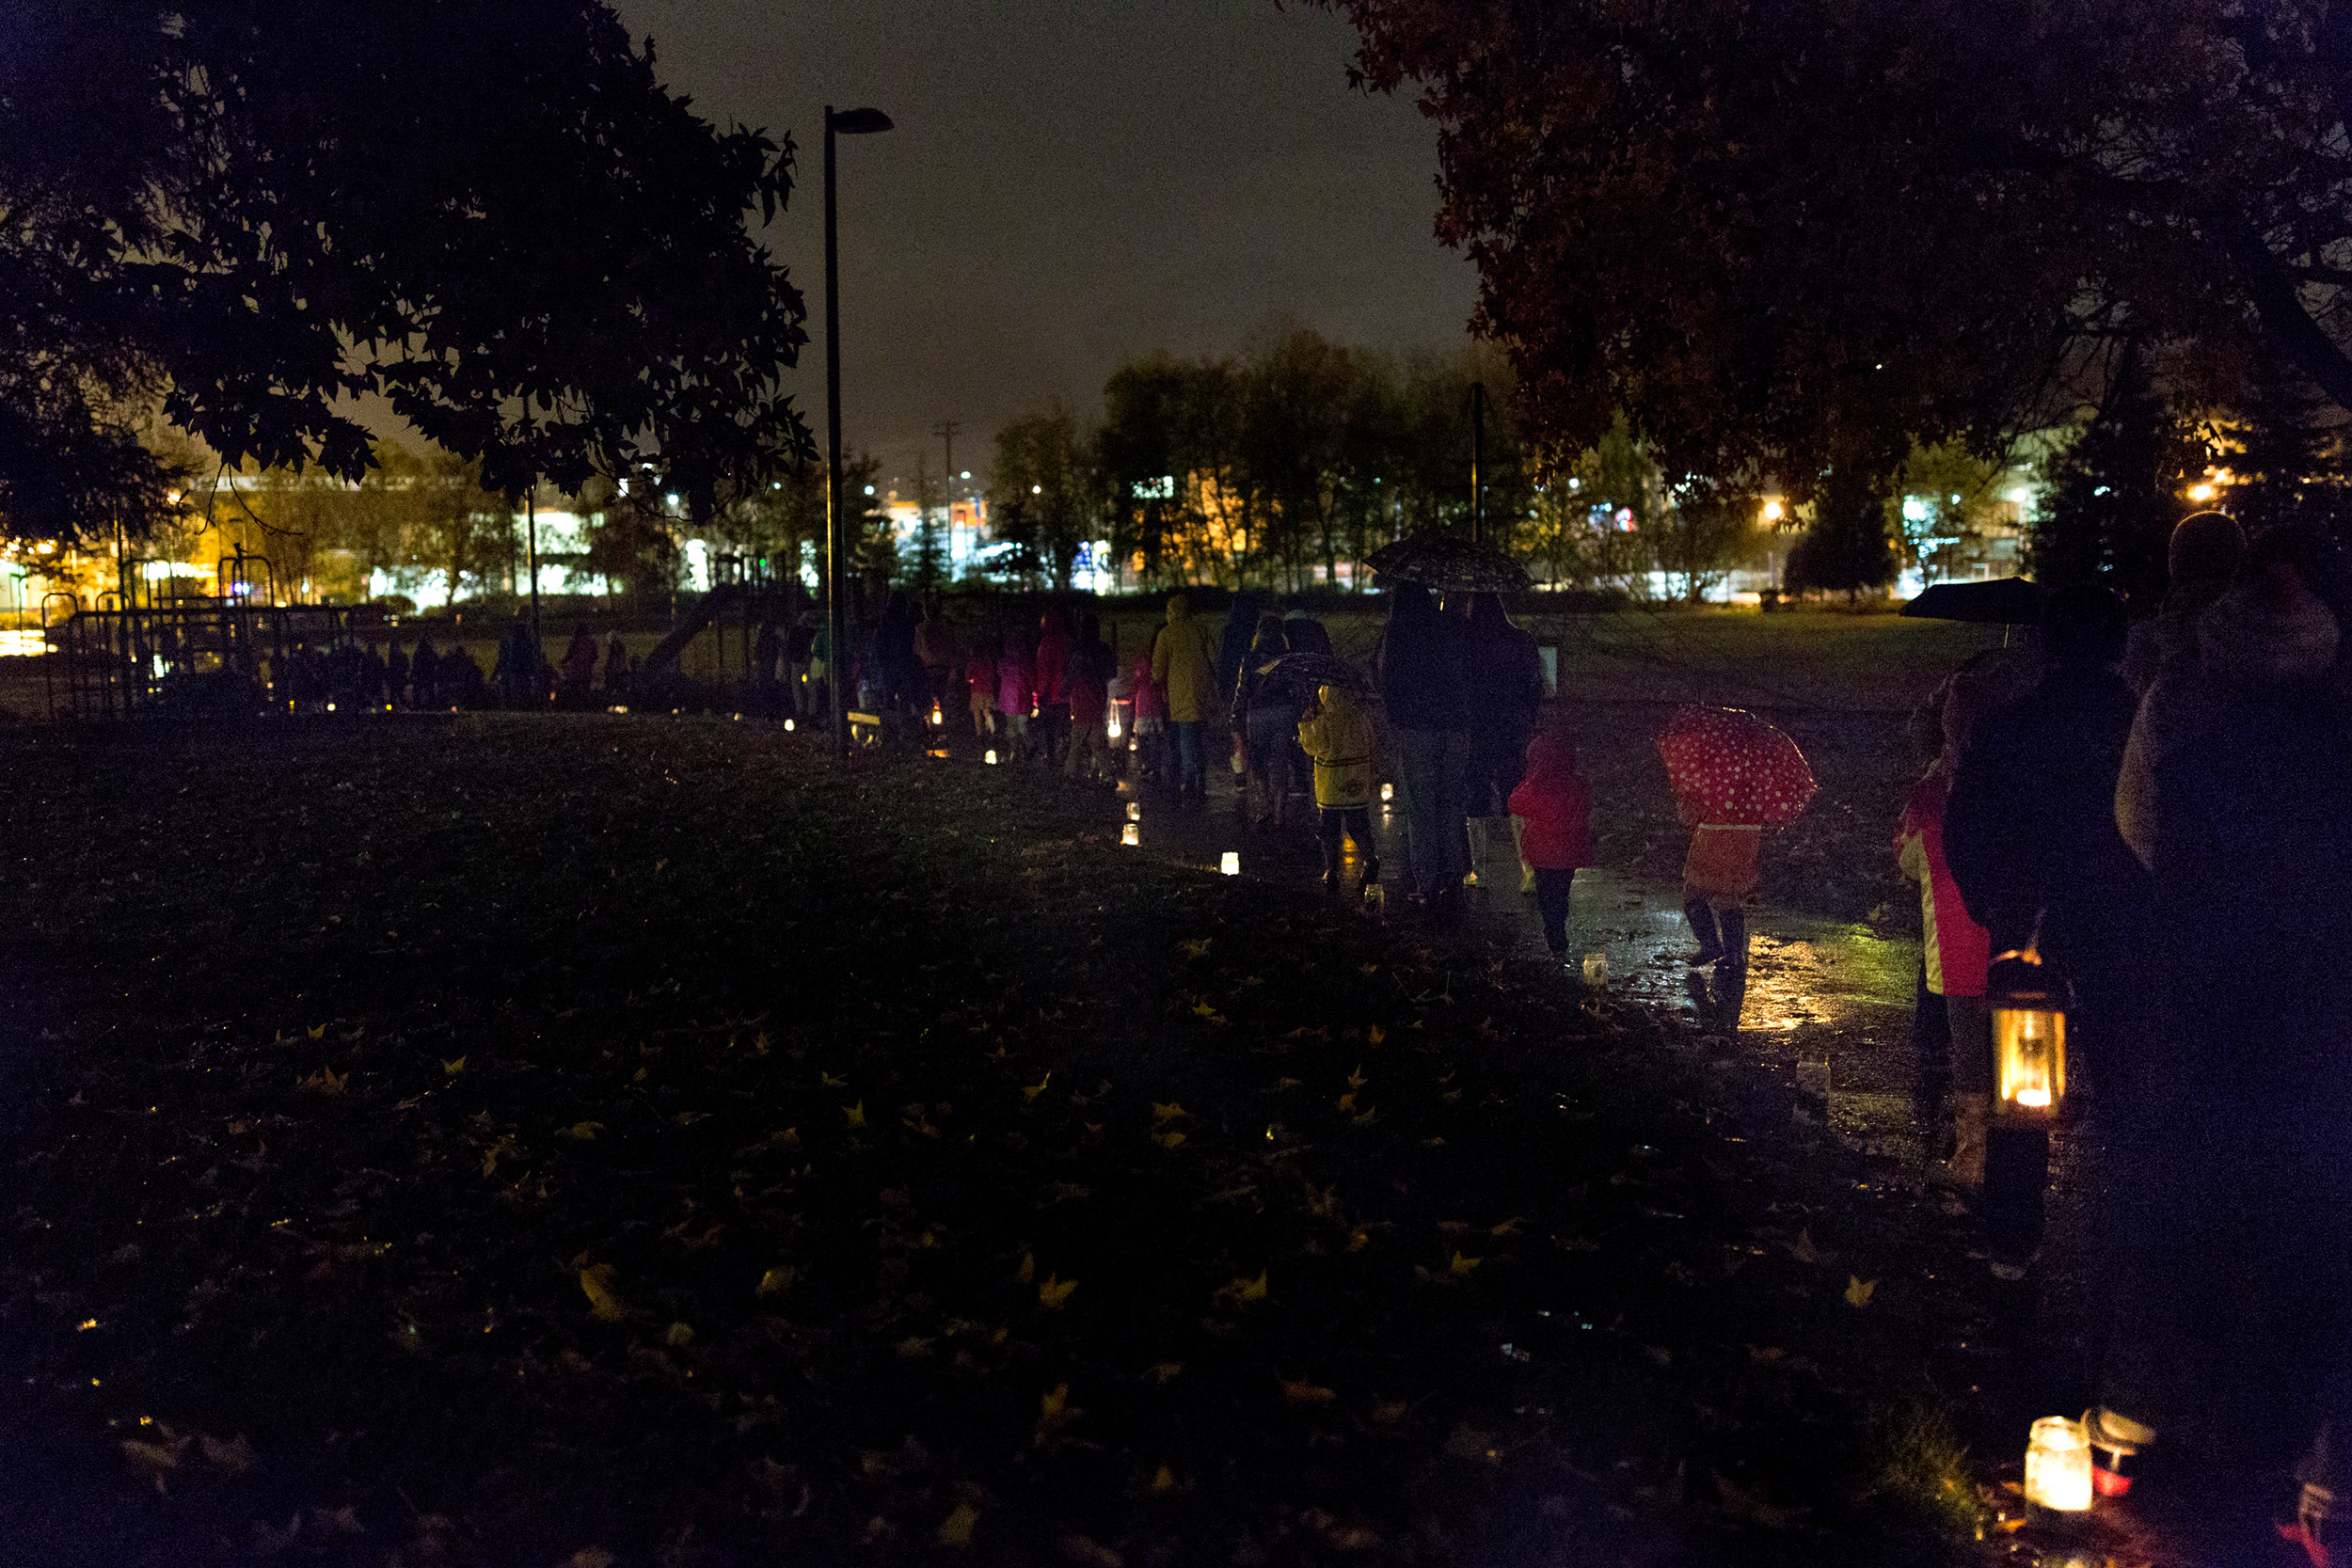 parents and children walking on path with lanterns